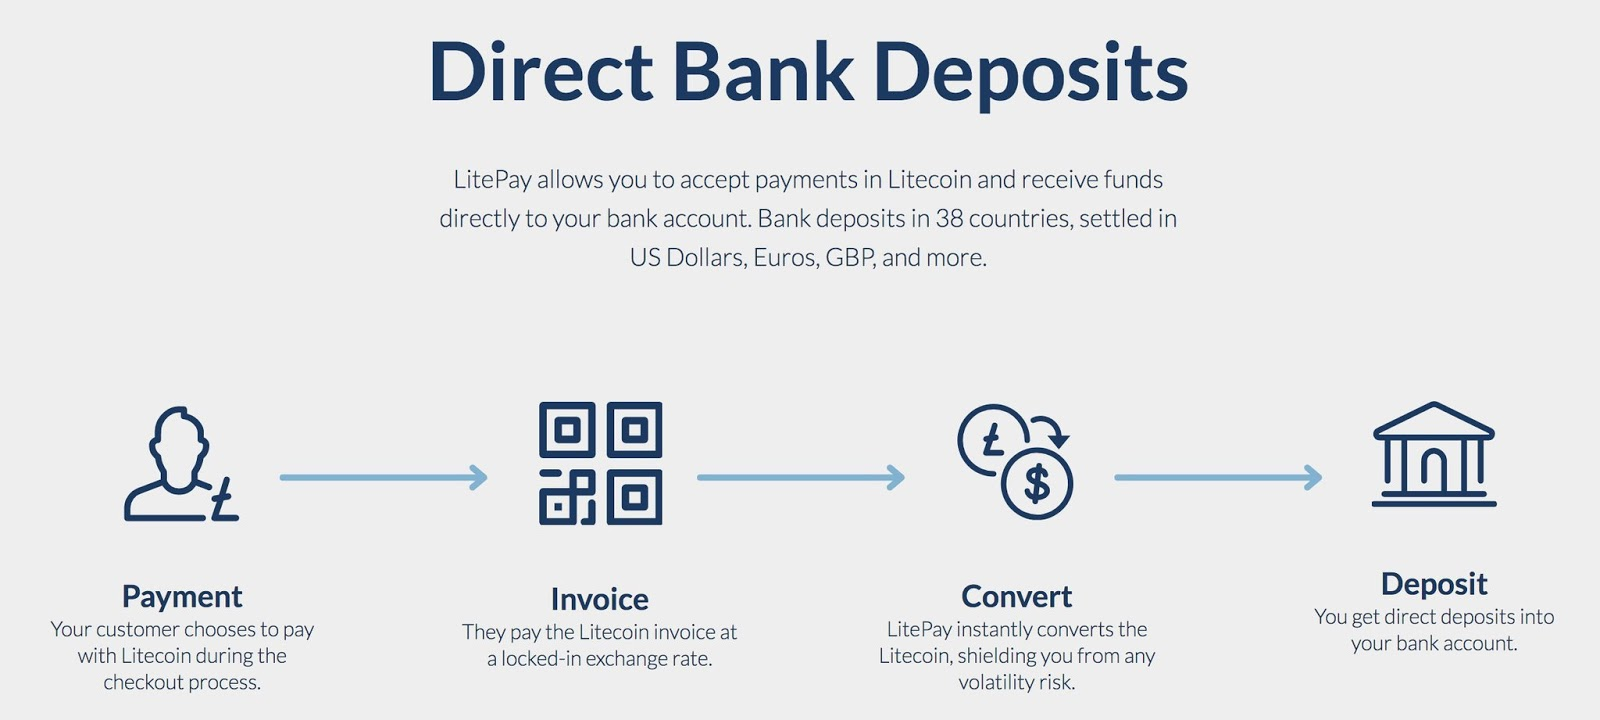 Direct Bank Deposits